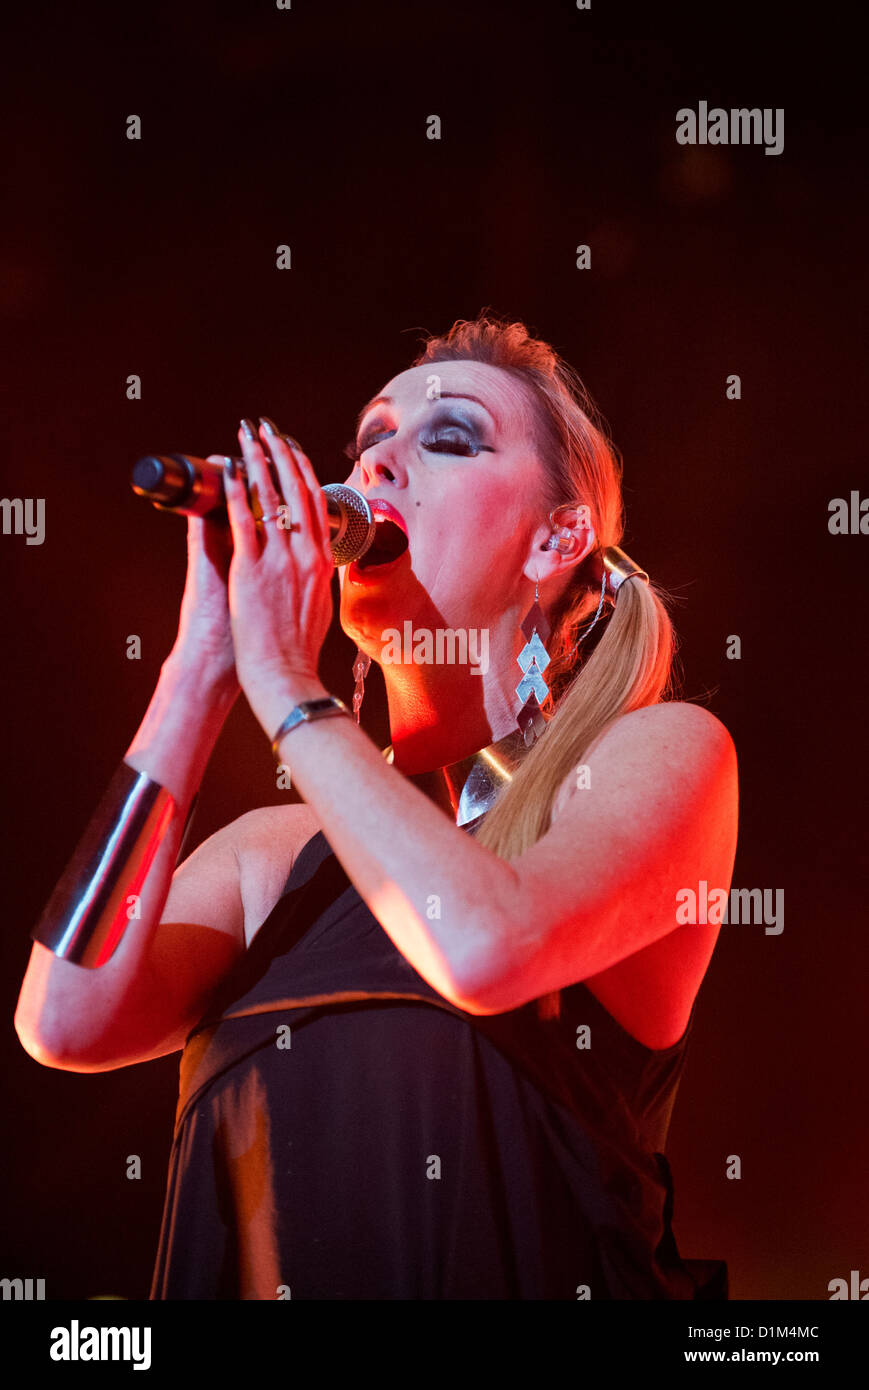 Susan Anne Sulley in concert with with her band the Human League, Wolverhampton Civic Hall, 2 December 2012. - Stock Image